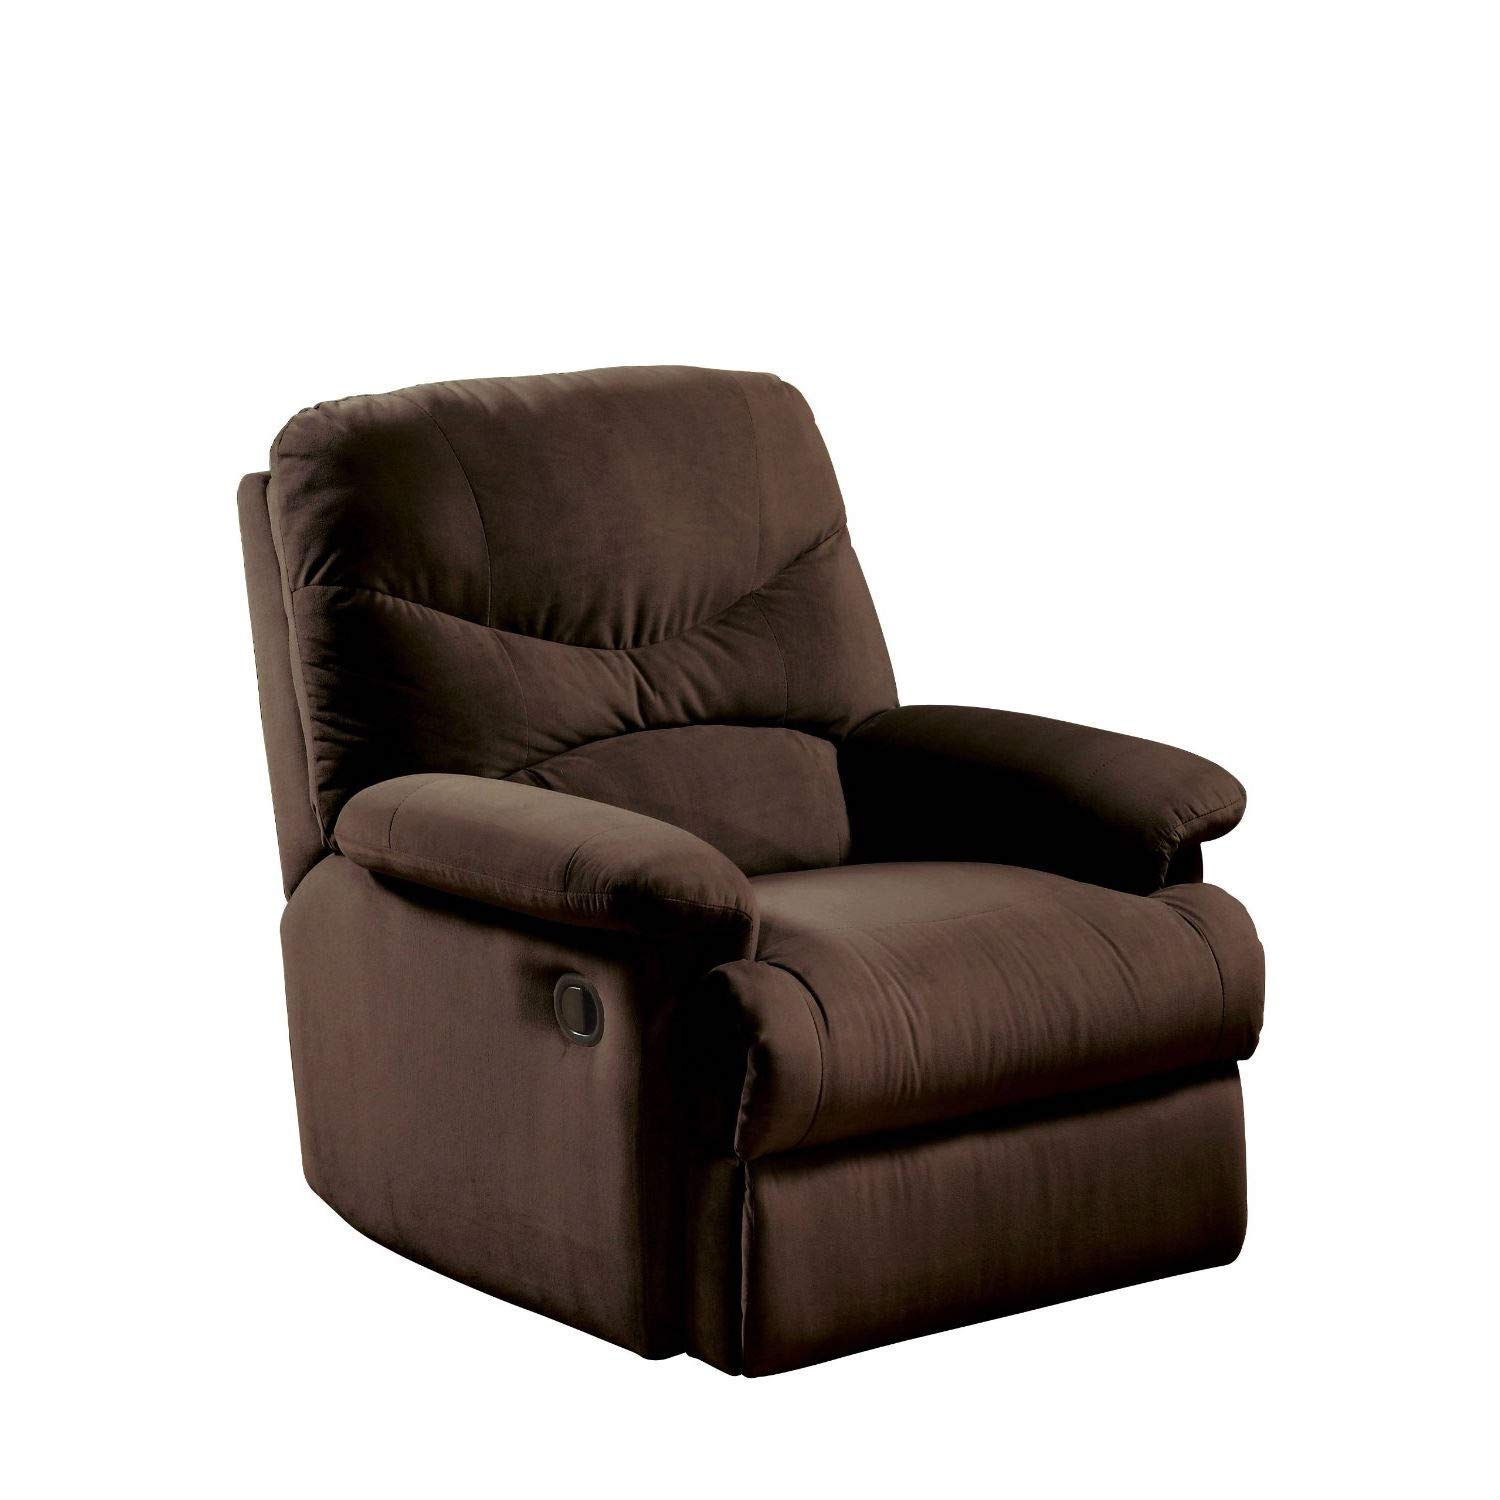 the comfortable chair store wheelchair dubai cheap find deals on get quotations trustpurchase recliner in chocolate brown microfiber upholstery has a lowering seat back knob